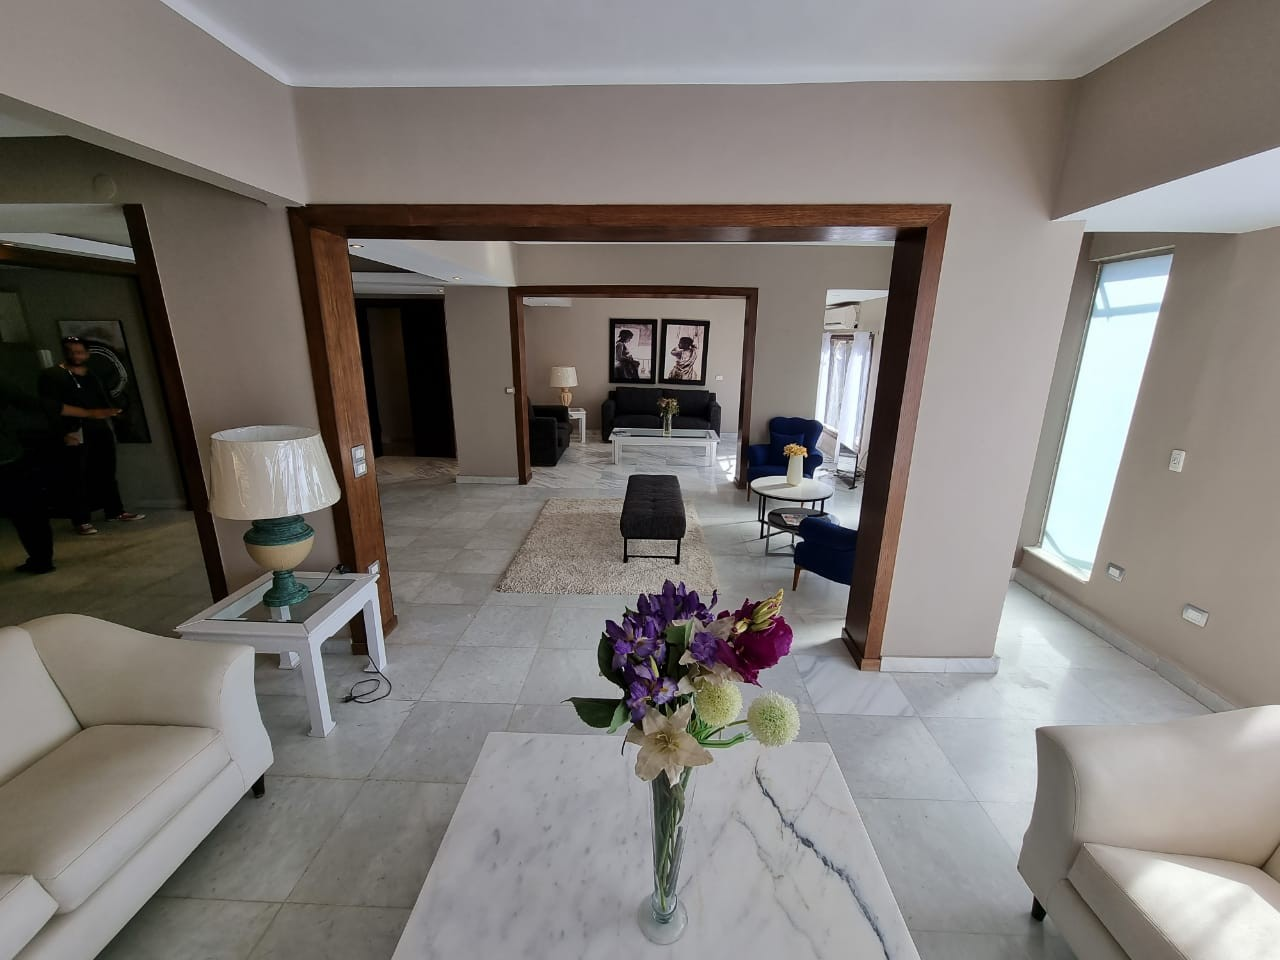 Spectacular Furnished Apartment For Rent In The Prime Location Of Degla El Maadi - 4892 Featured Image